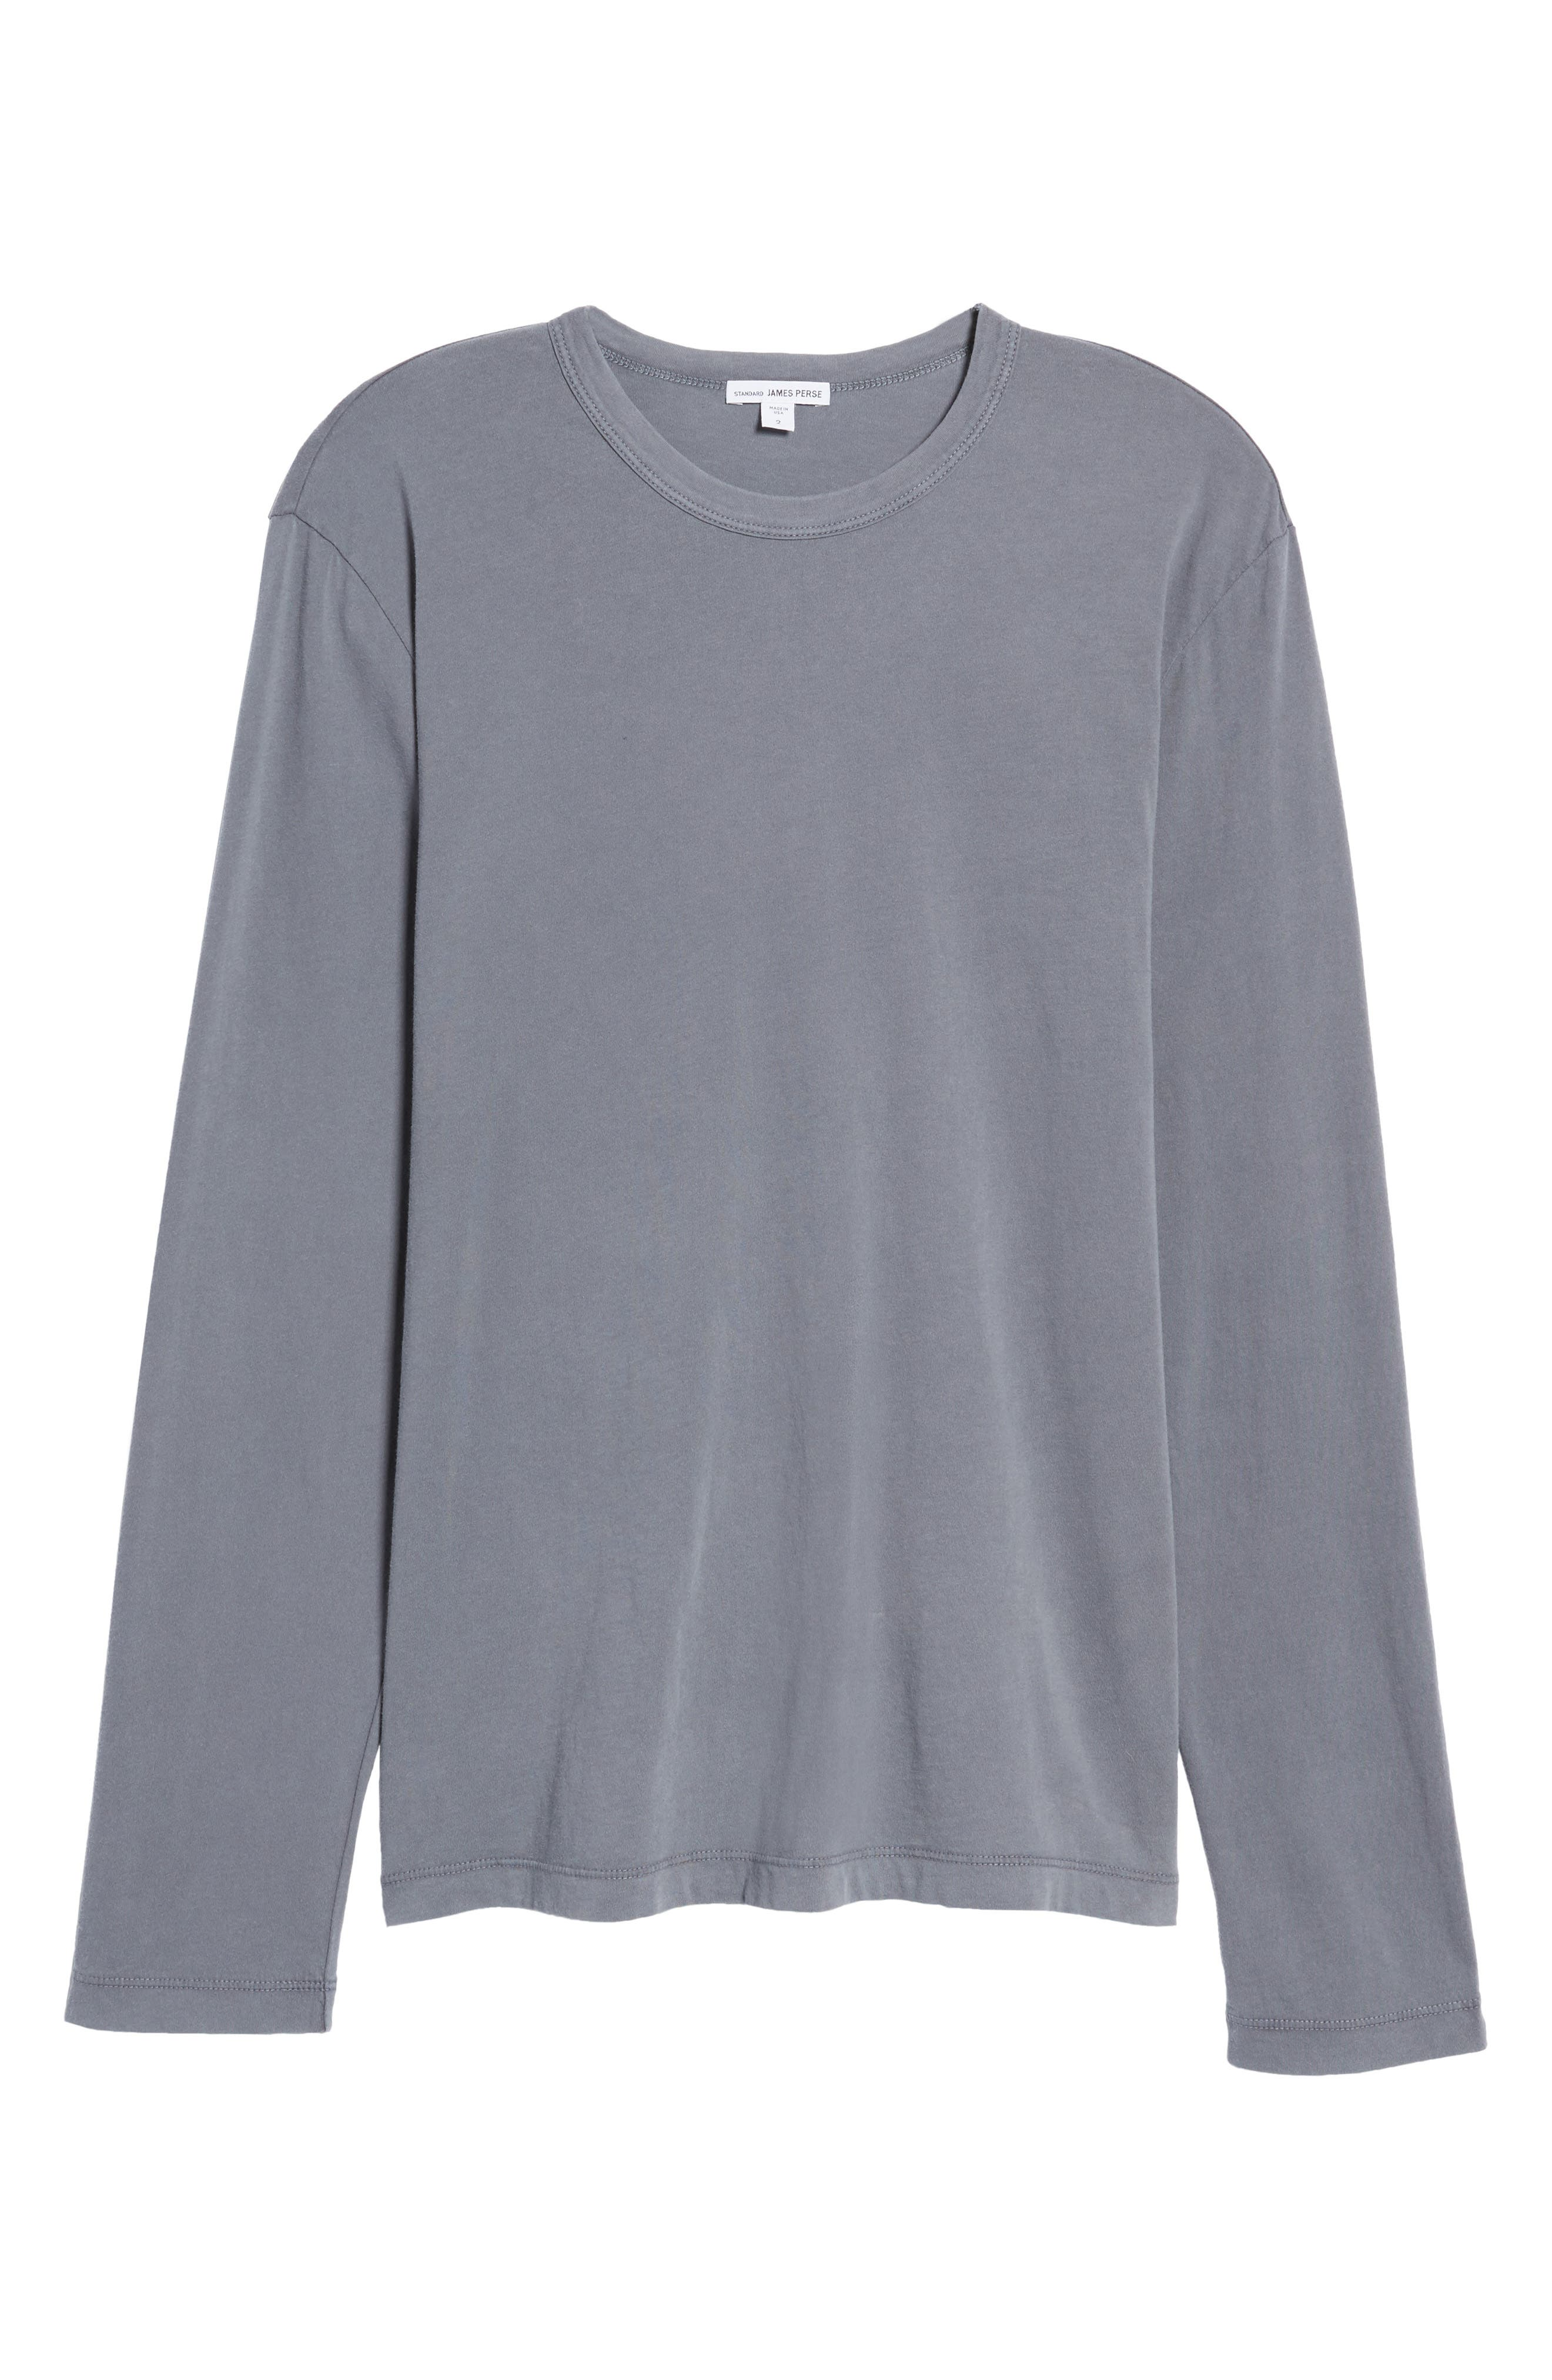 Long Sleeve Crewneck T-Shirt,                             Alternate thumbnail 7, color,                             NORTH PIGMENT GREY